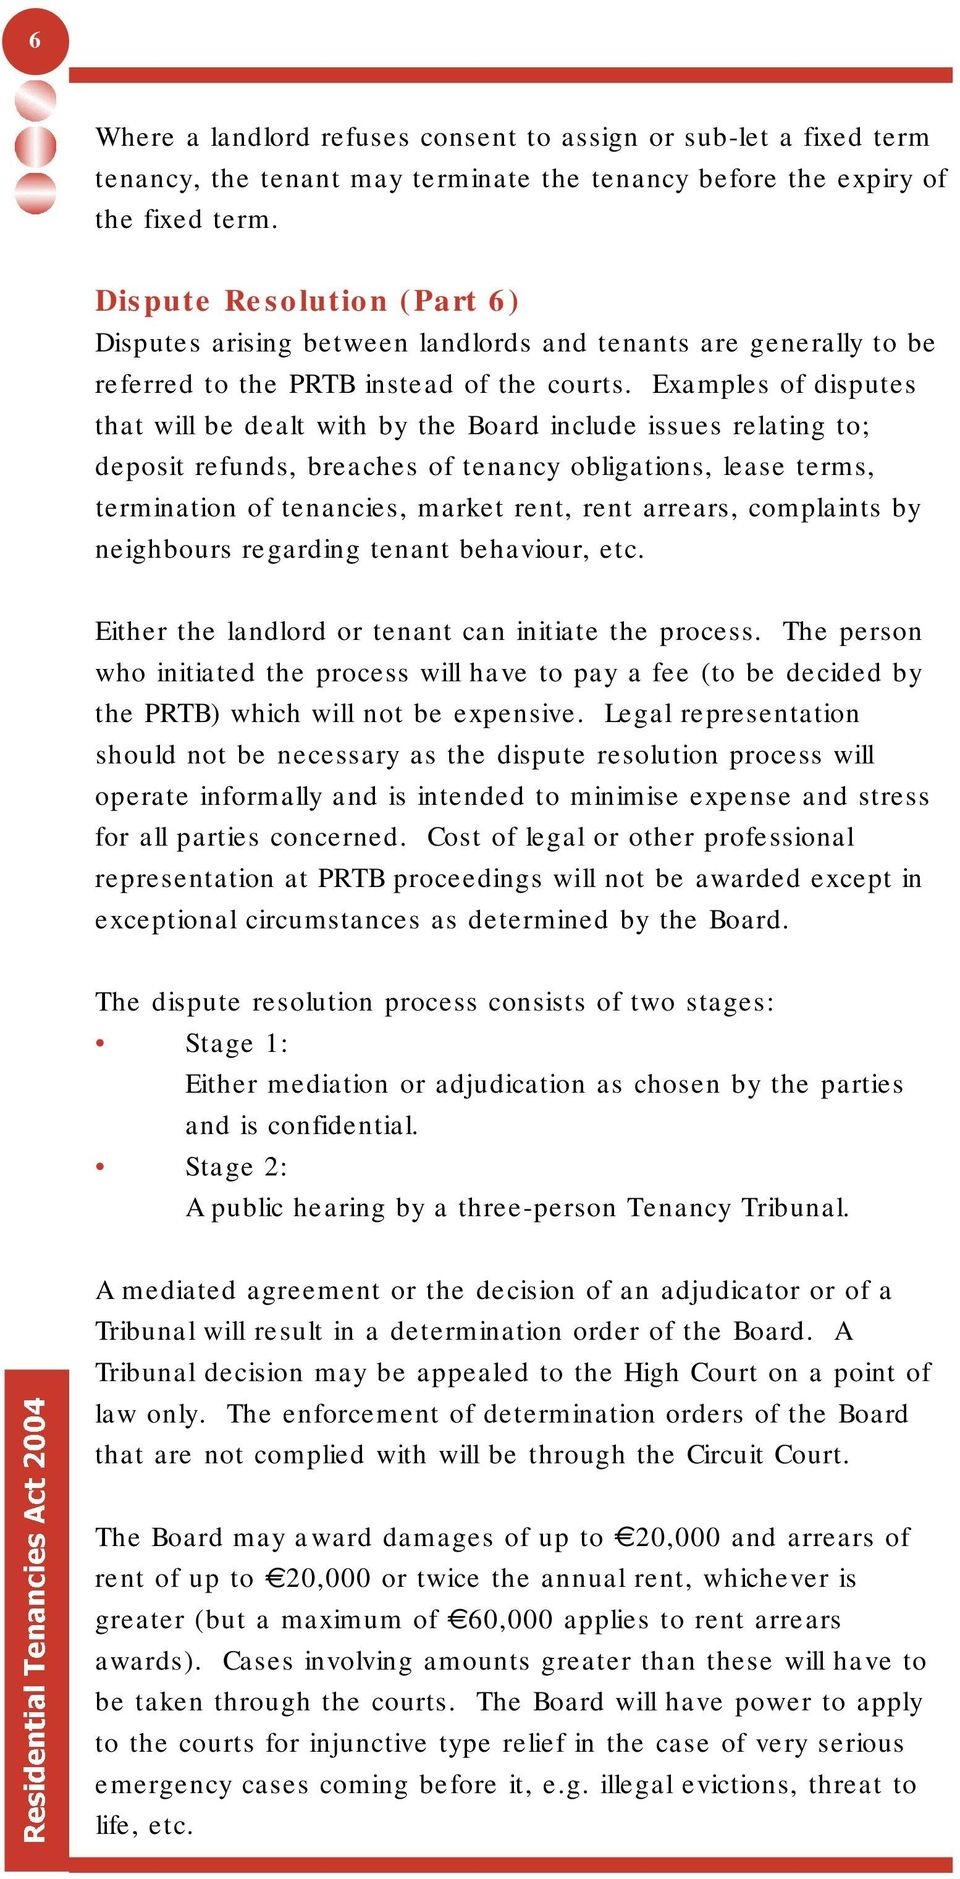 Examples of disputes that will be dealt with by the Board include issues relating to; deposit refunds, breaches of tenancy obligations, lease terms, termination of tenancies, market rent, rent